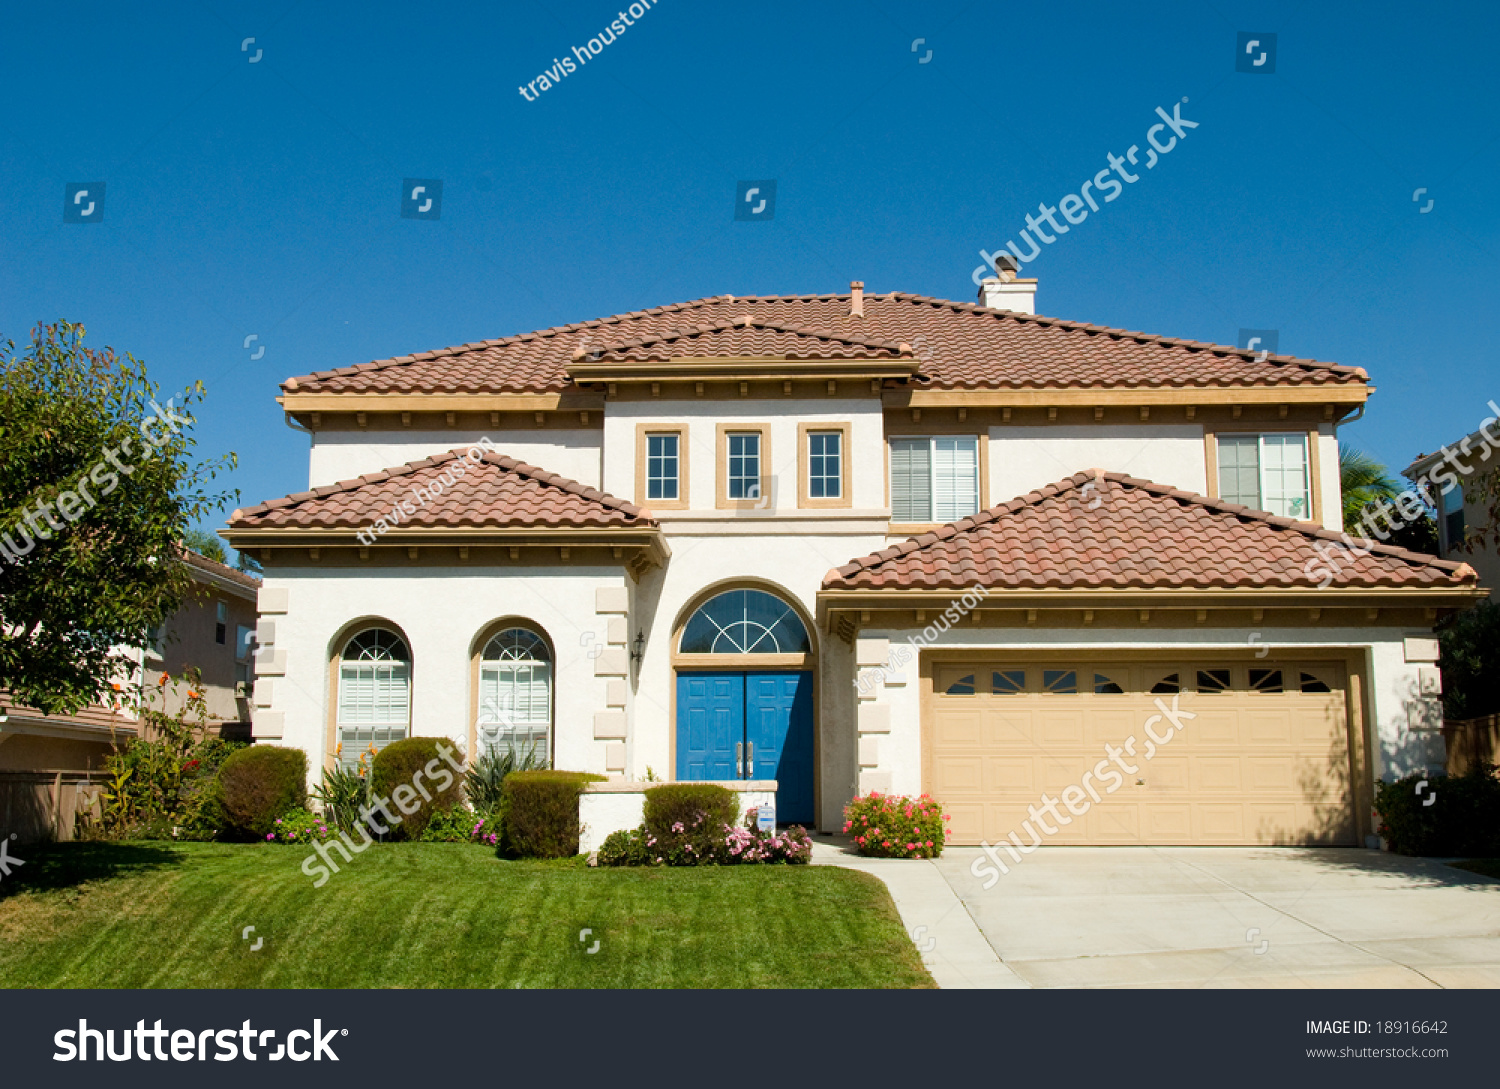 Spanish style contemporary house with green grass yard and for Modern spanish style homes